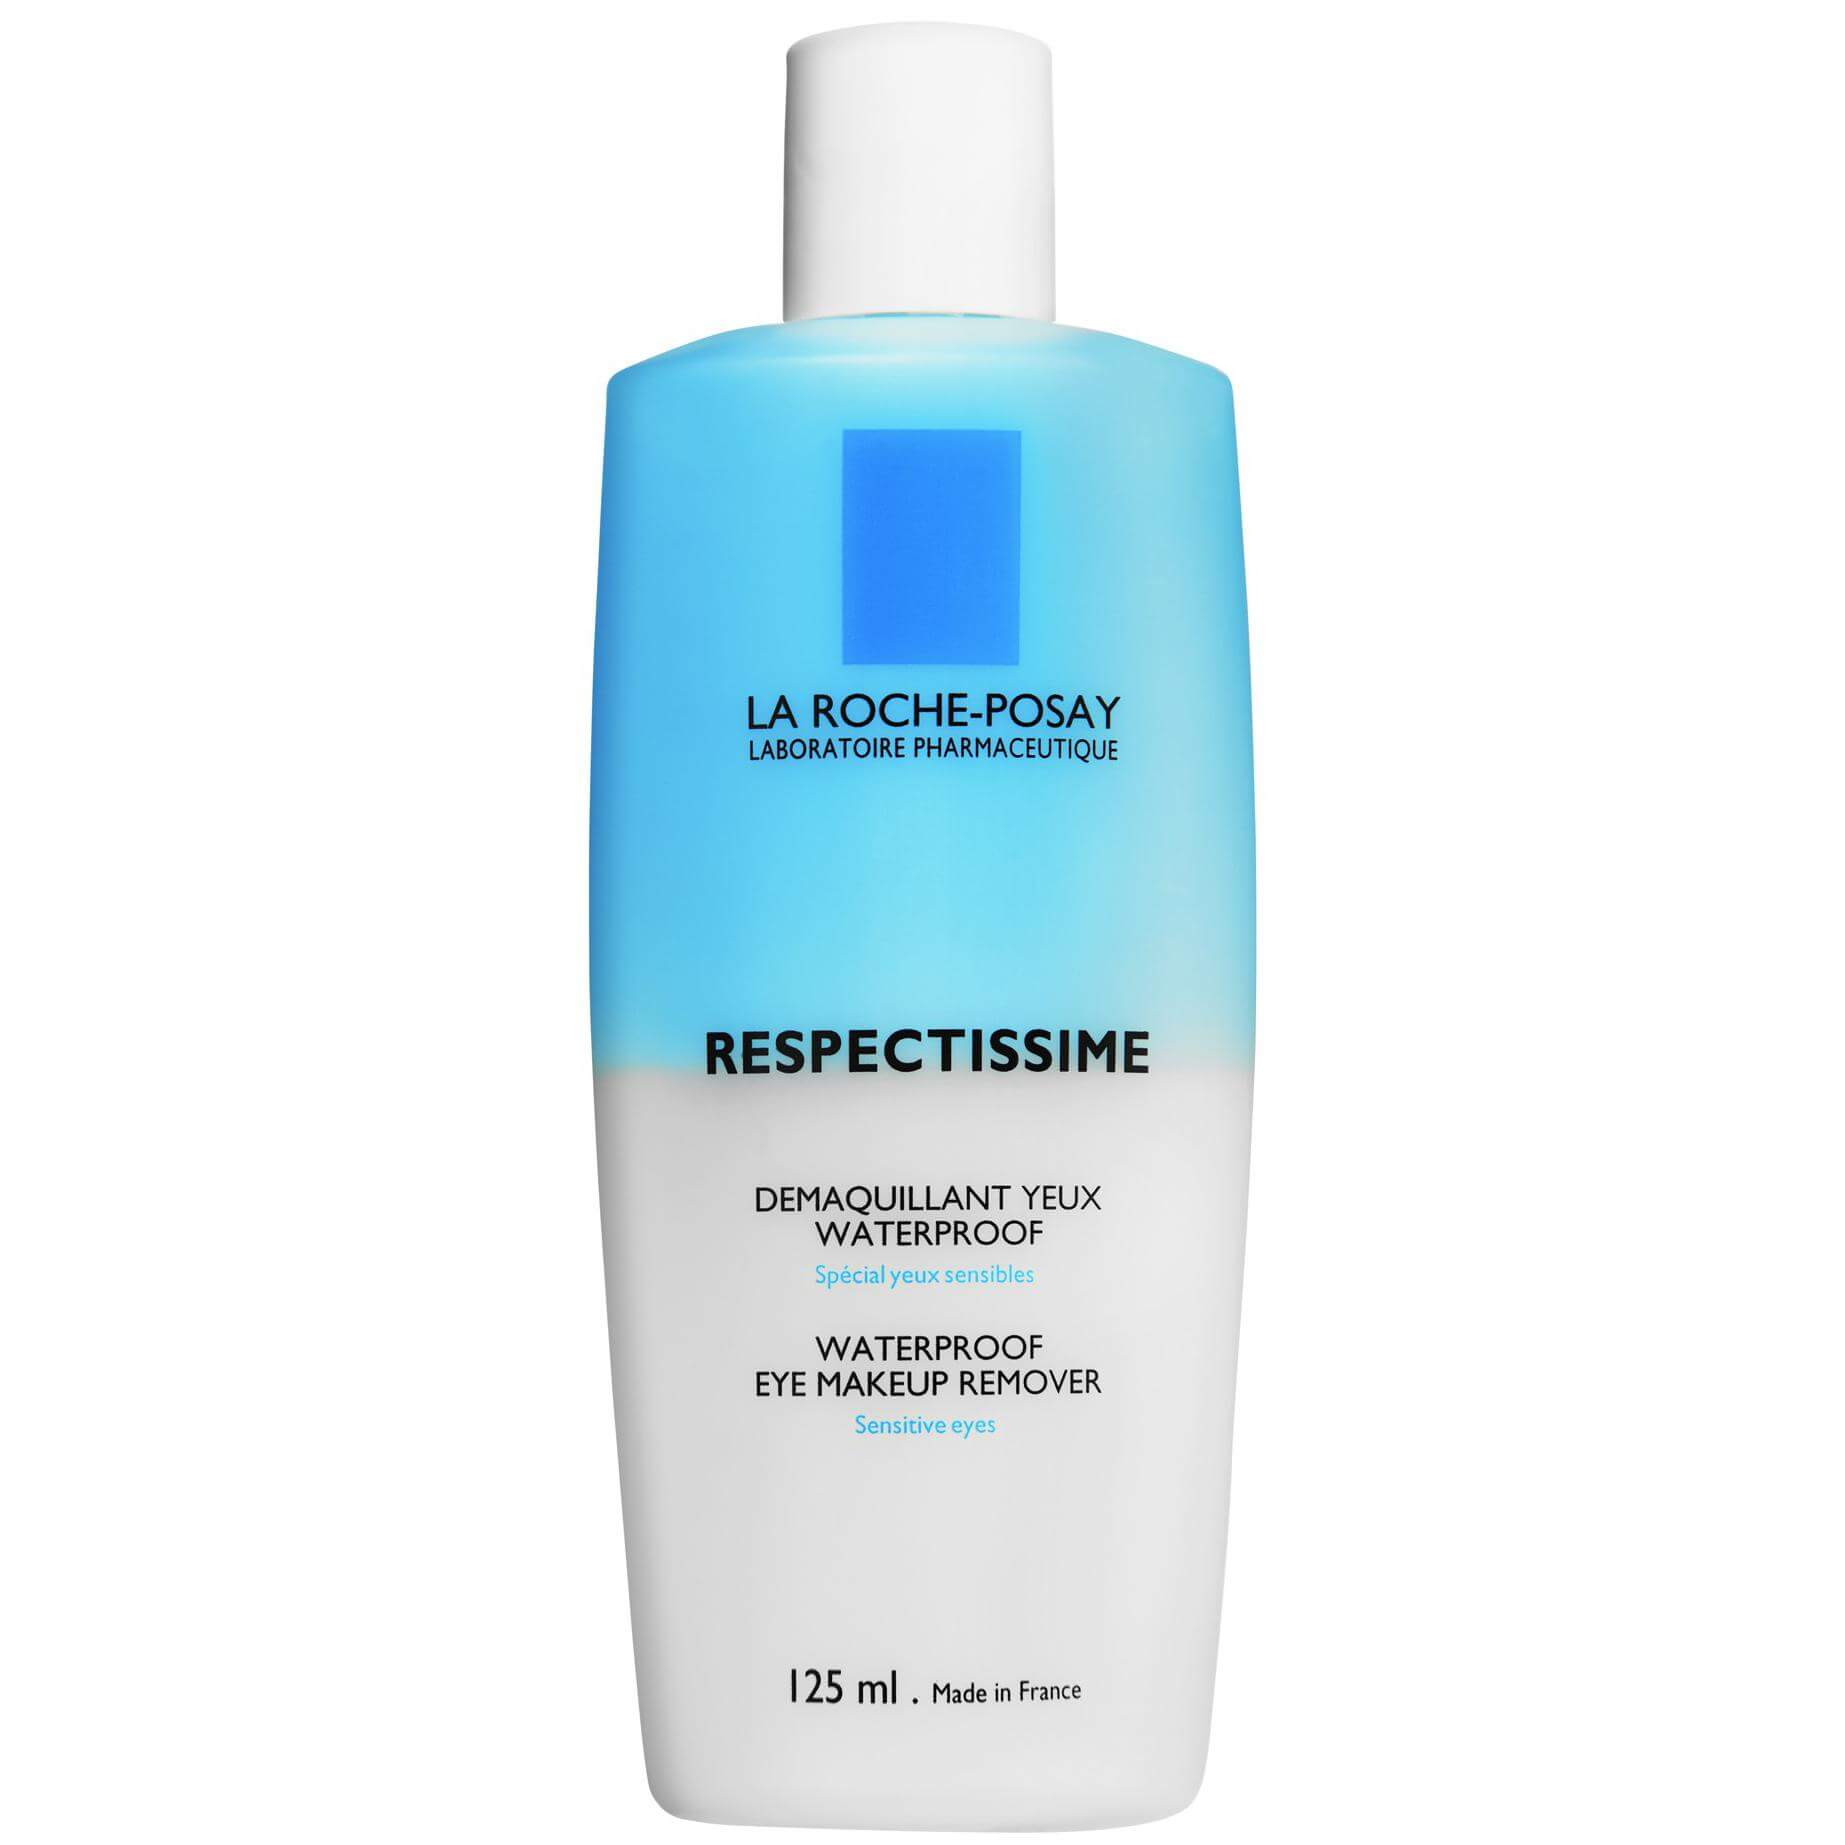 La Roche-Posay Respectissime Demaquillant Yeux Waterproof Ντεμακιγιάζ Ματιών 125ml